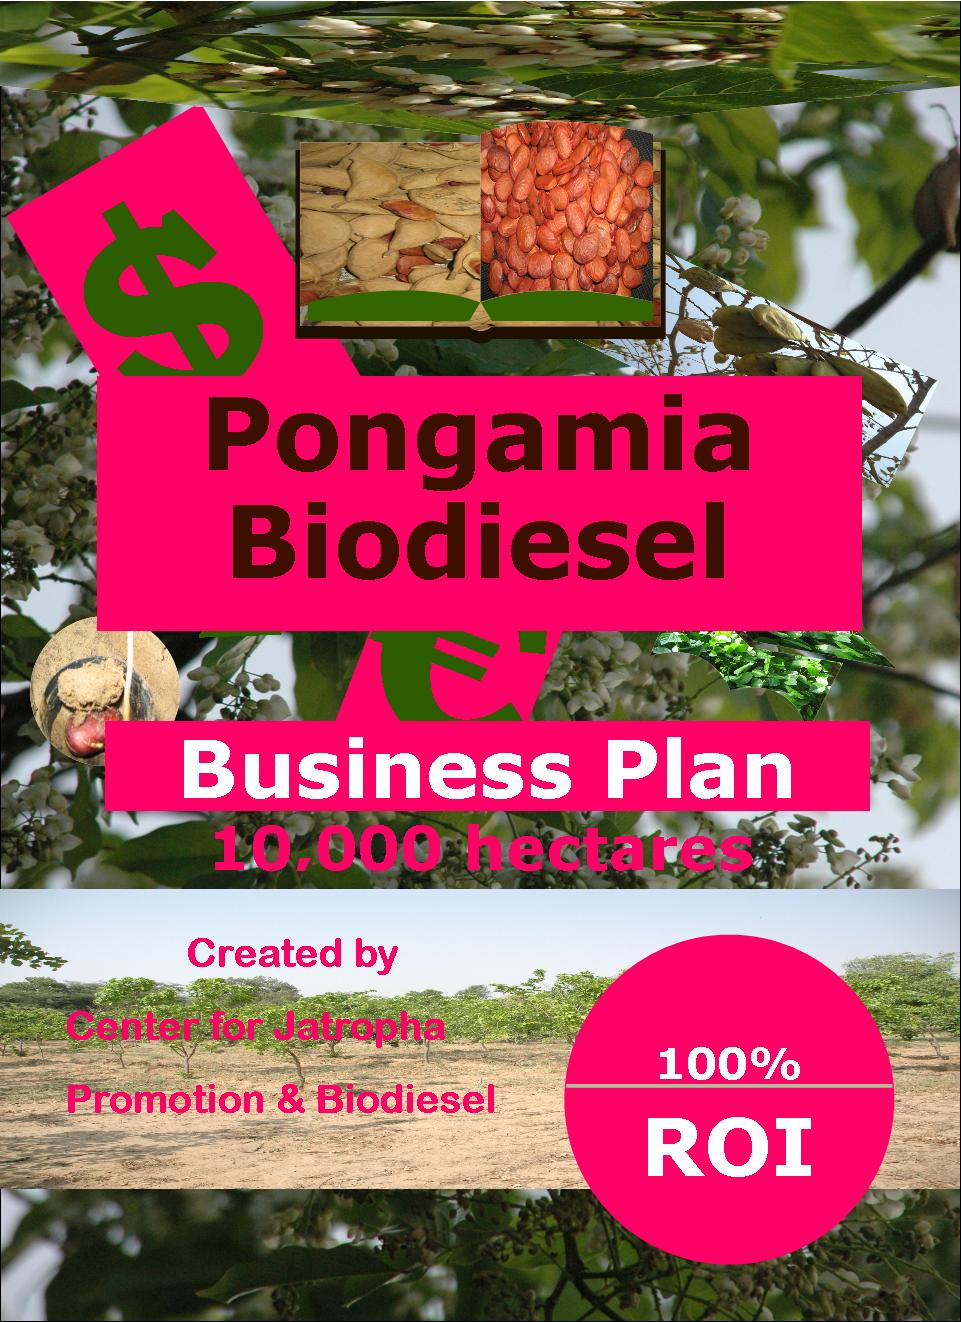 pongamia biodiesel business plan 10 k ha